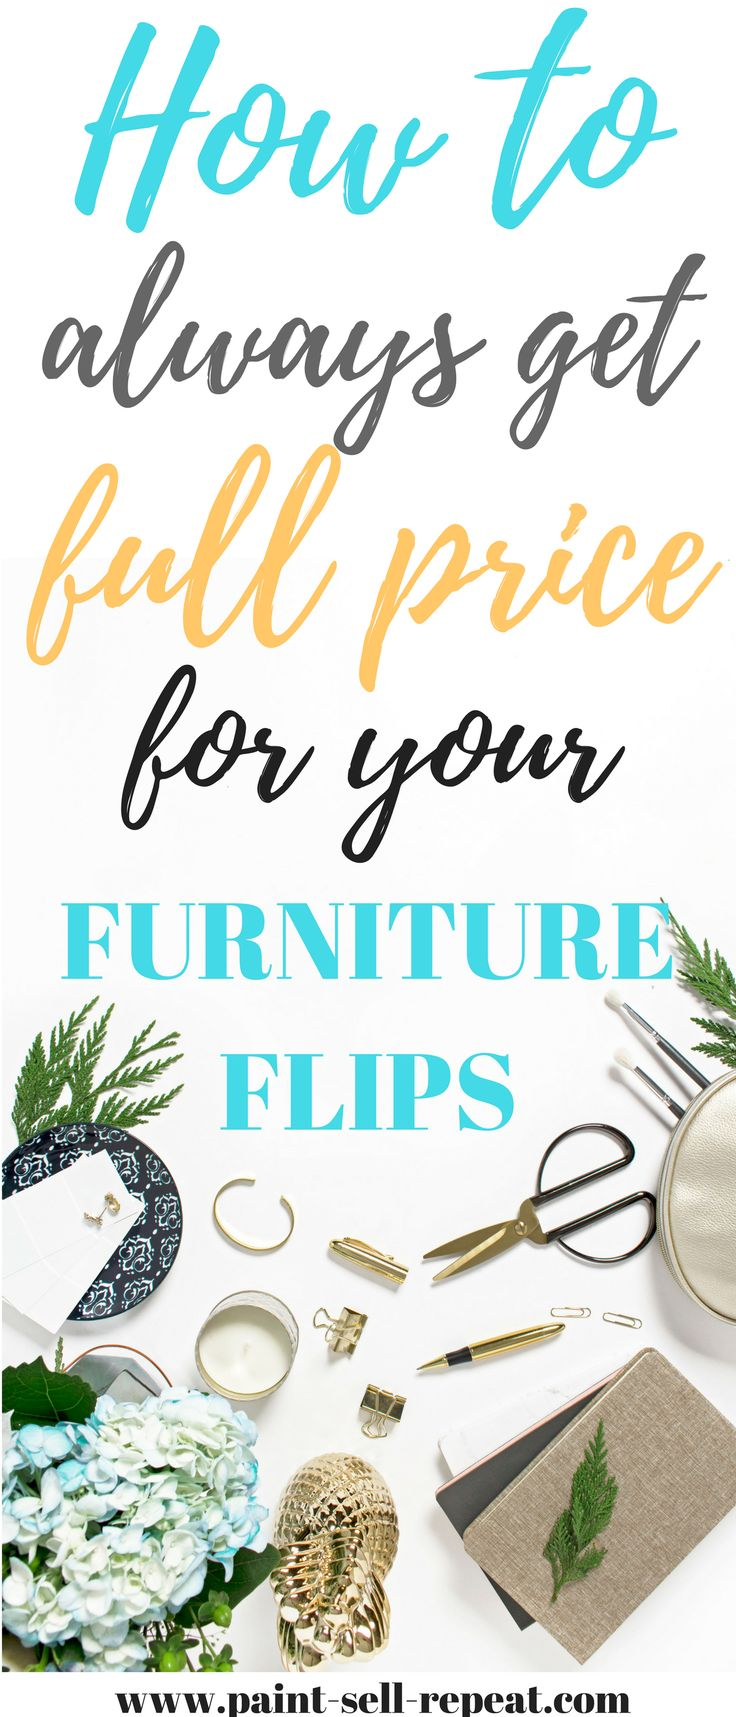 These are all the tried and true ways to always sell your furniture pieces for F...